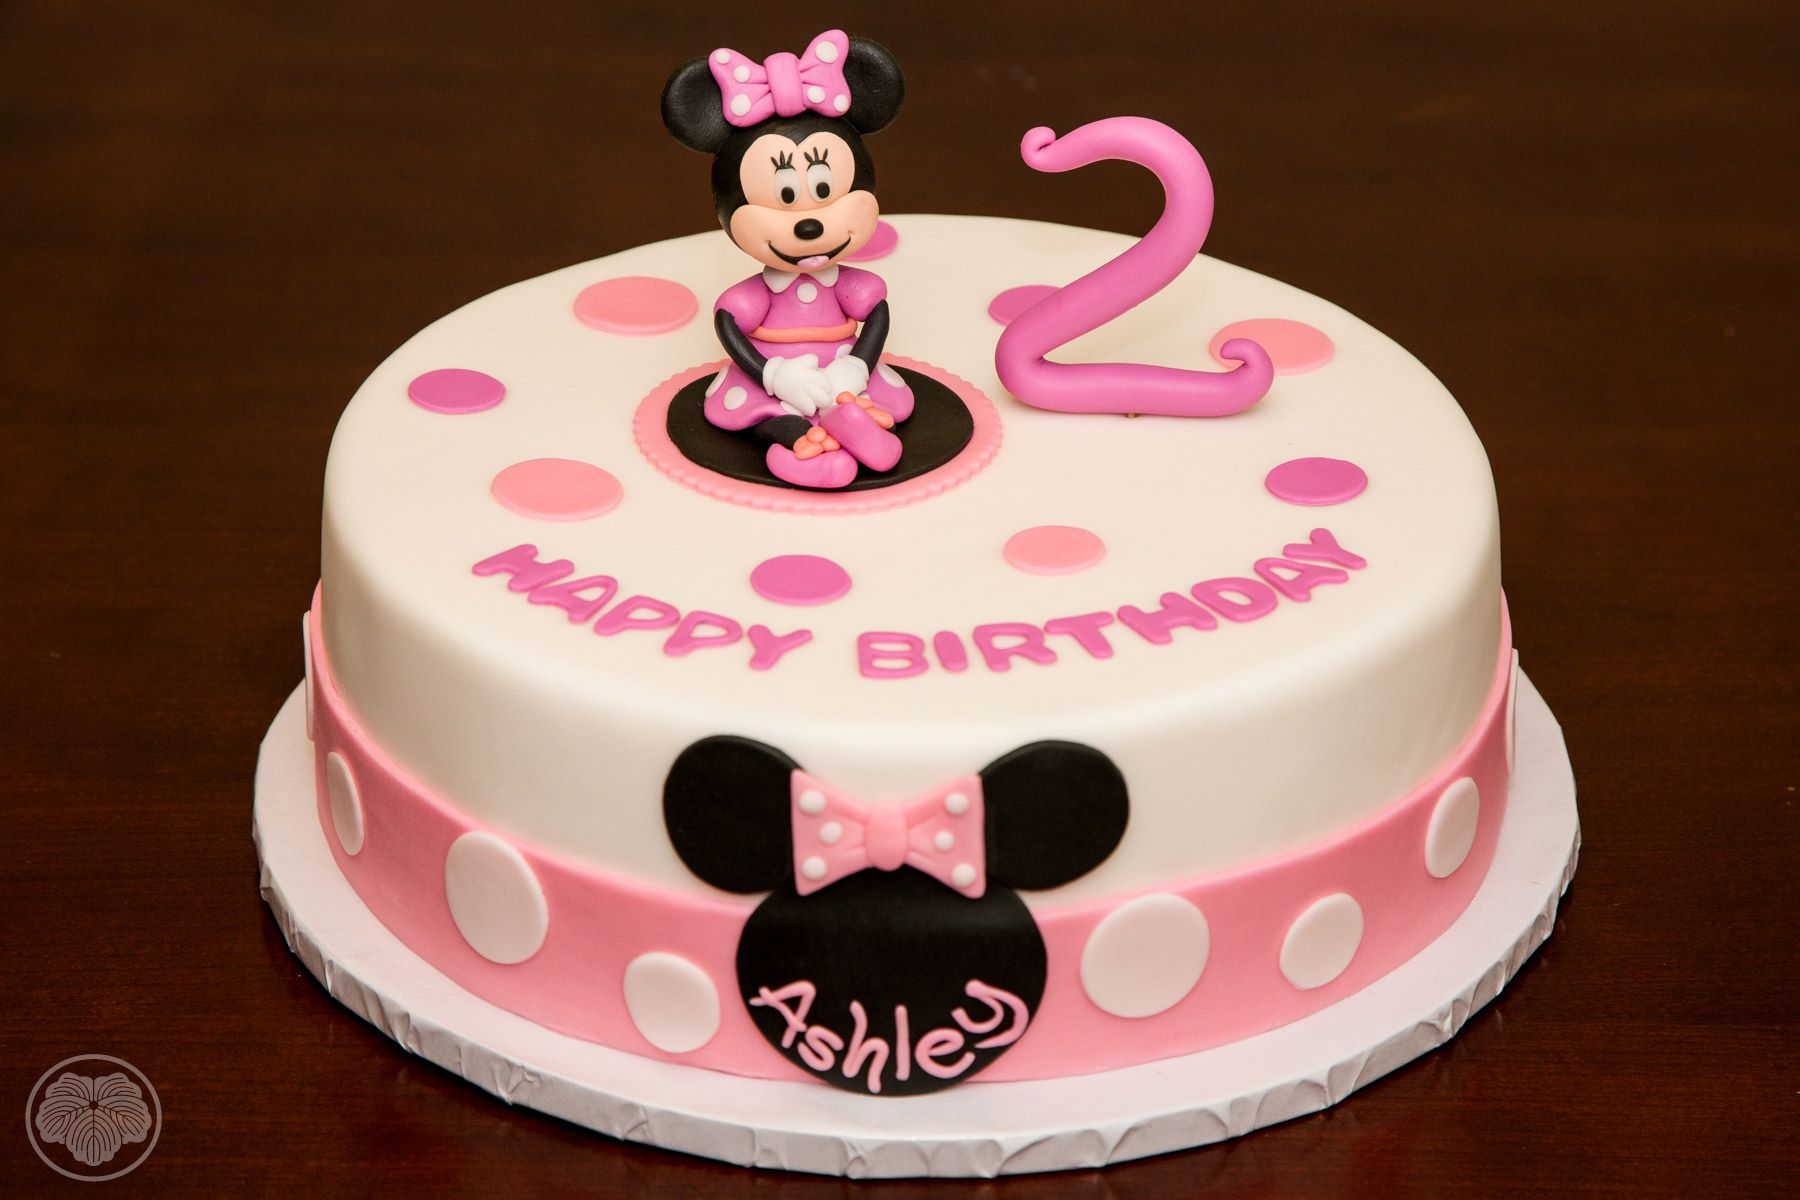 Tremendous Minnie Mouse Birthday Cake For Two Year Old Minnie Mouse Funny Birthday Cards Online Elaedamsfinfo